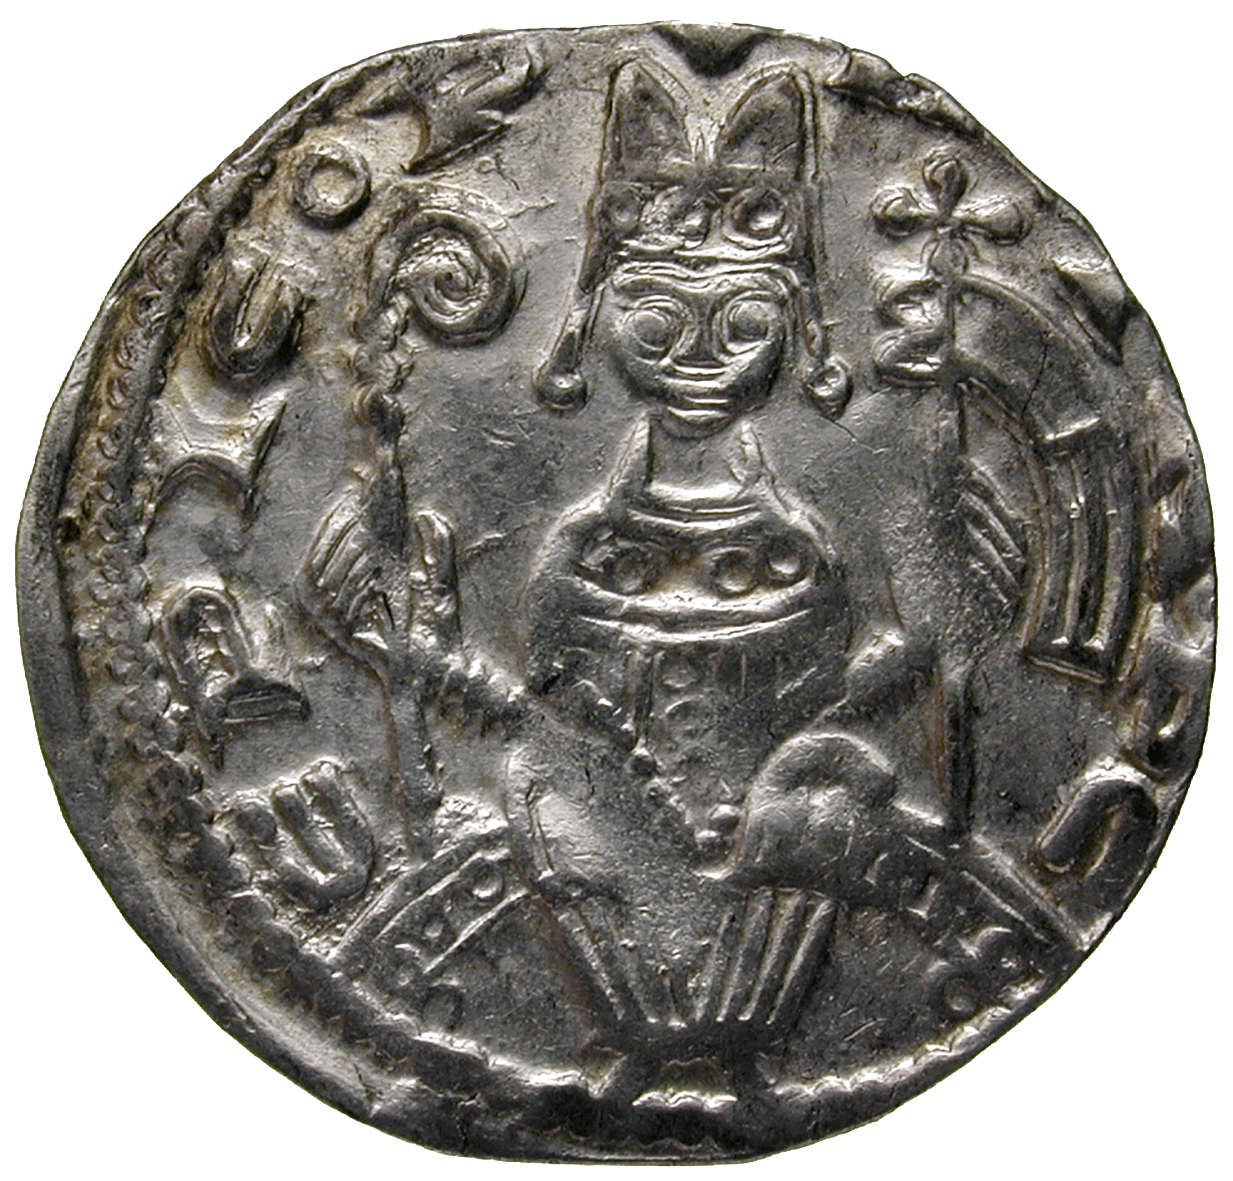 Holy Roman Empire, Archbishopric of Cologne, Philip of Heinsberg, Pfennig (obverse)